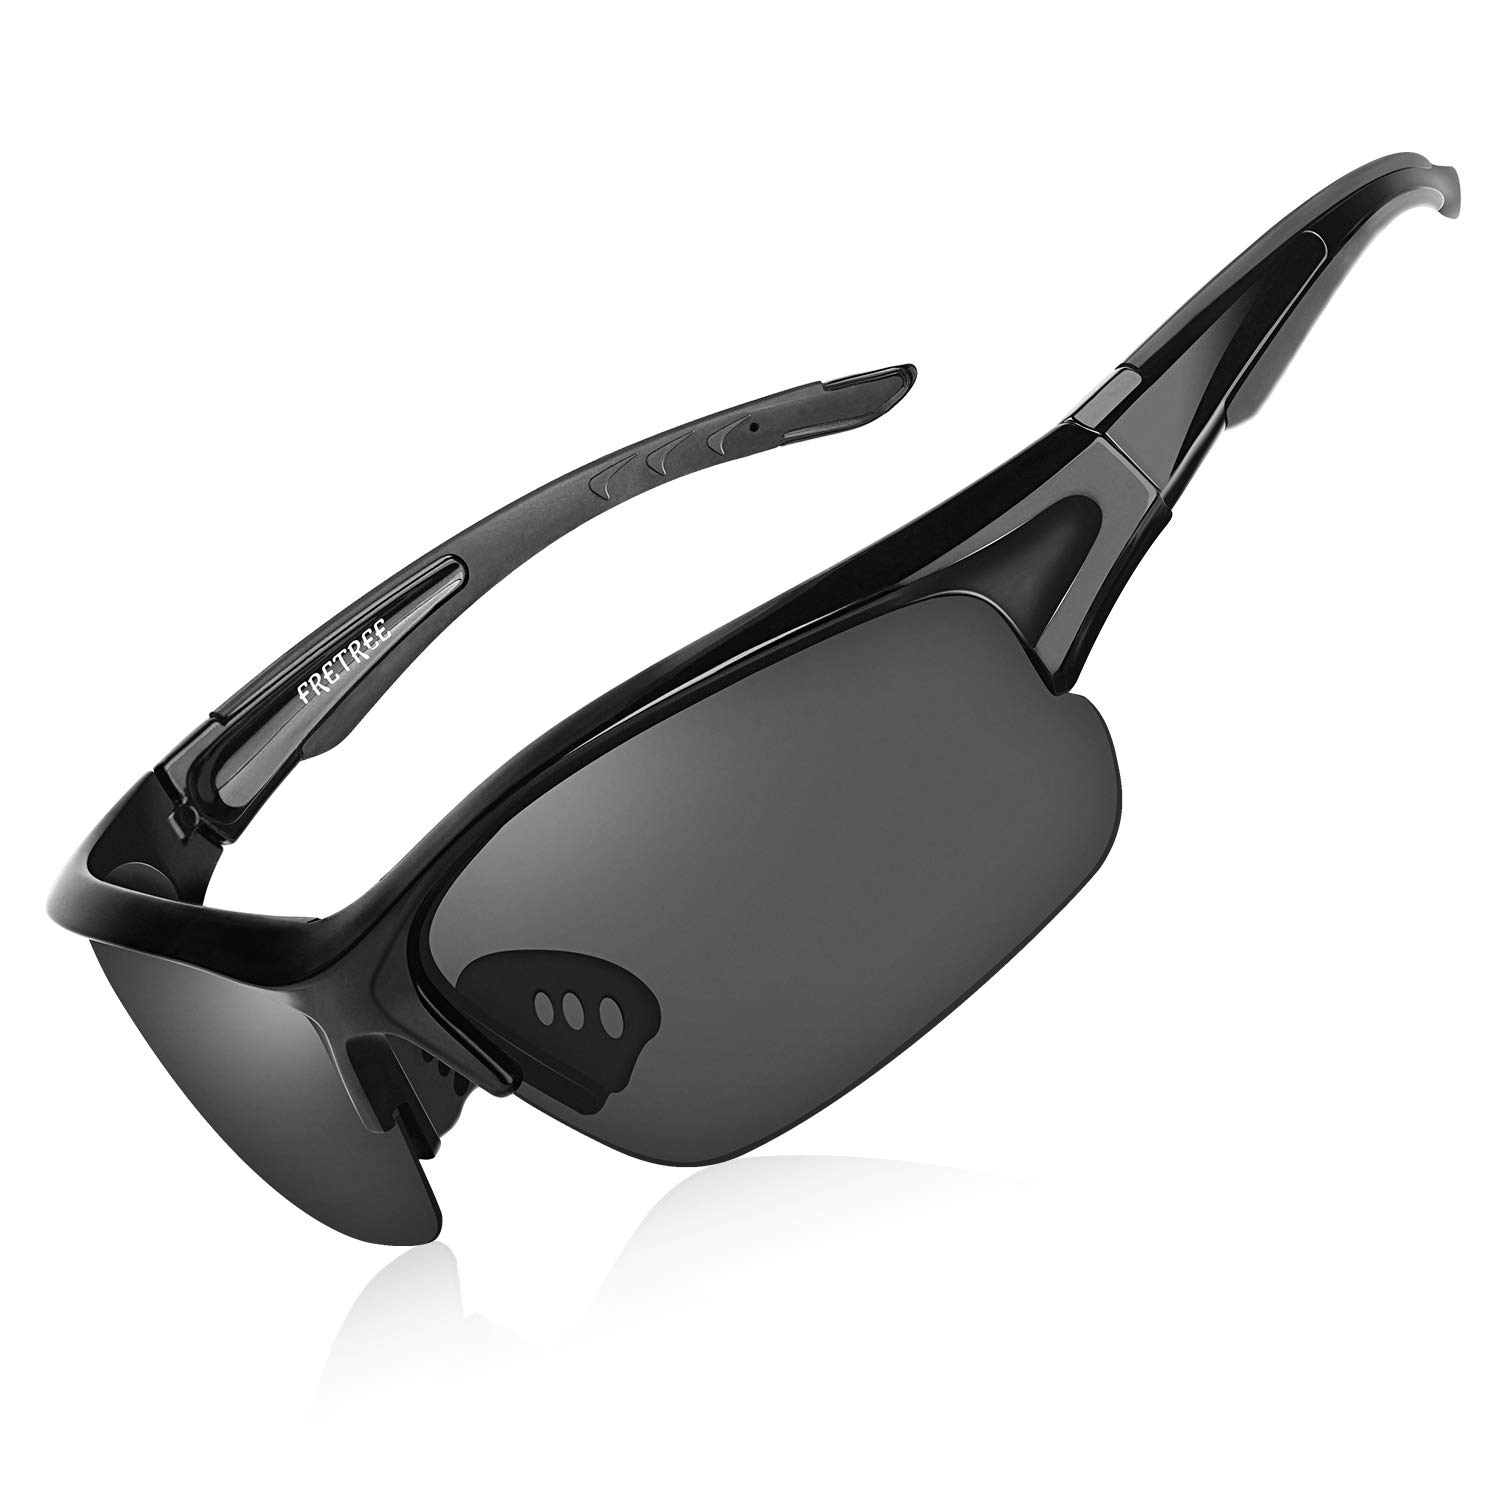 FRETREE Polarized Sunglasses for Men Women - UV Protection TR90 Unbreakable Sports Sunglasses for Fishing Driving Cycling by FRETREE